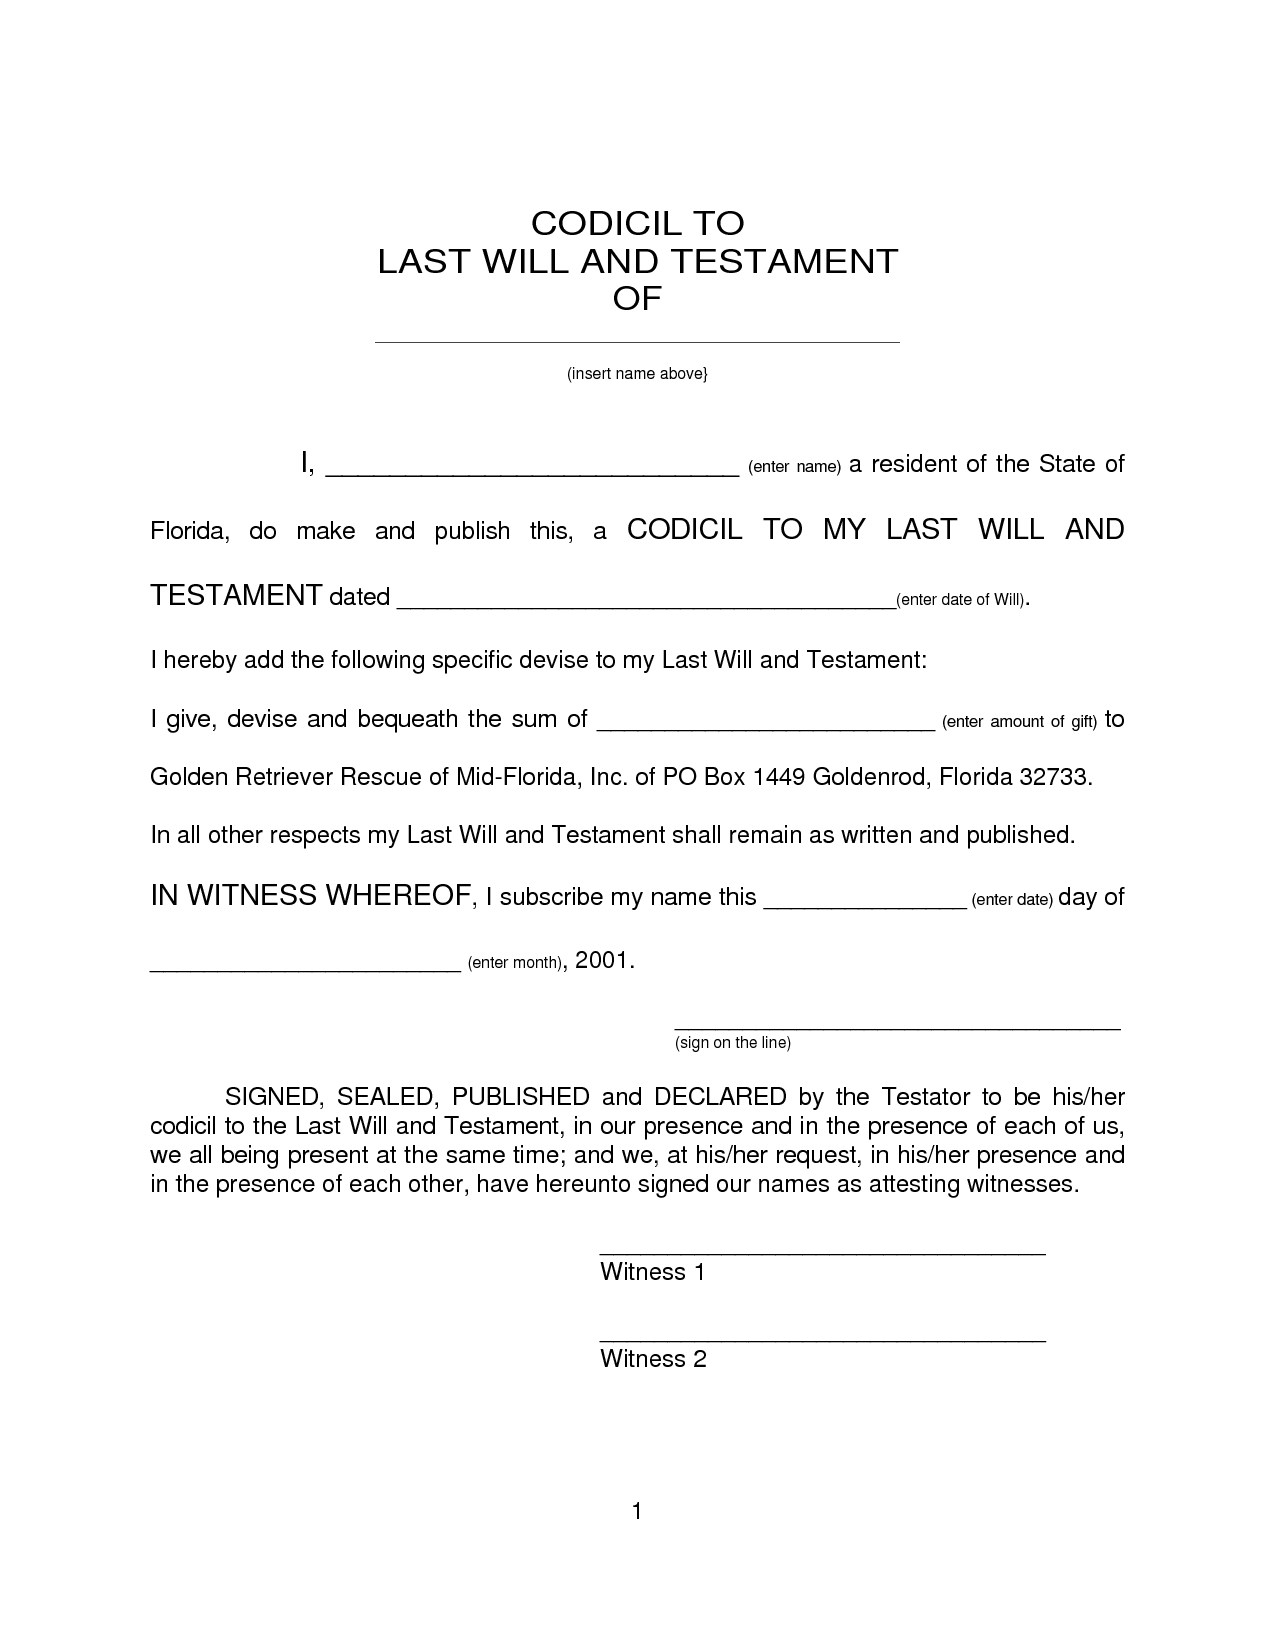 Last Will And Testament Sample Form Free Printable Documents Last Will And Testament Will And Testament Estate Planning Checklist